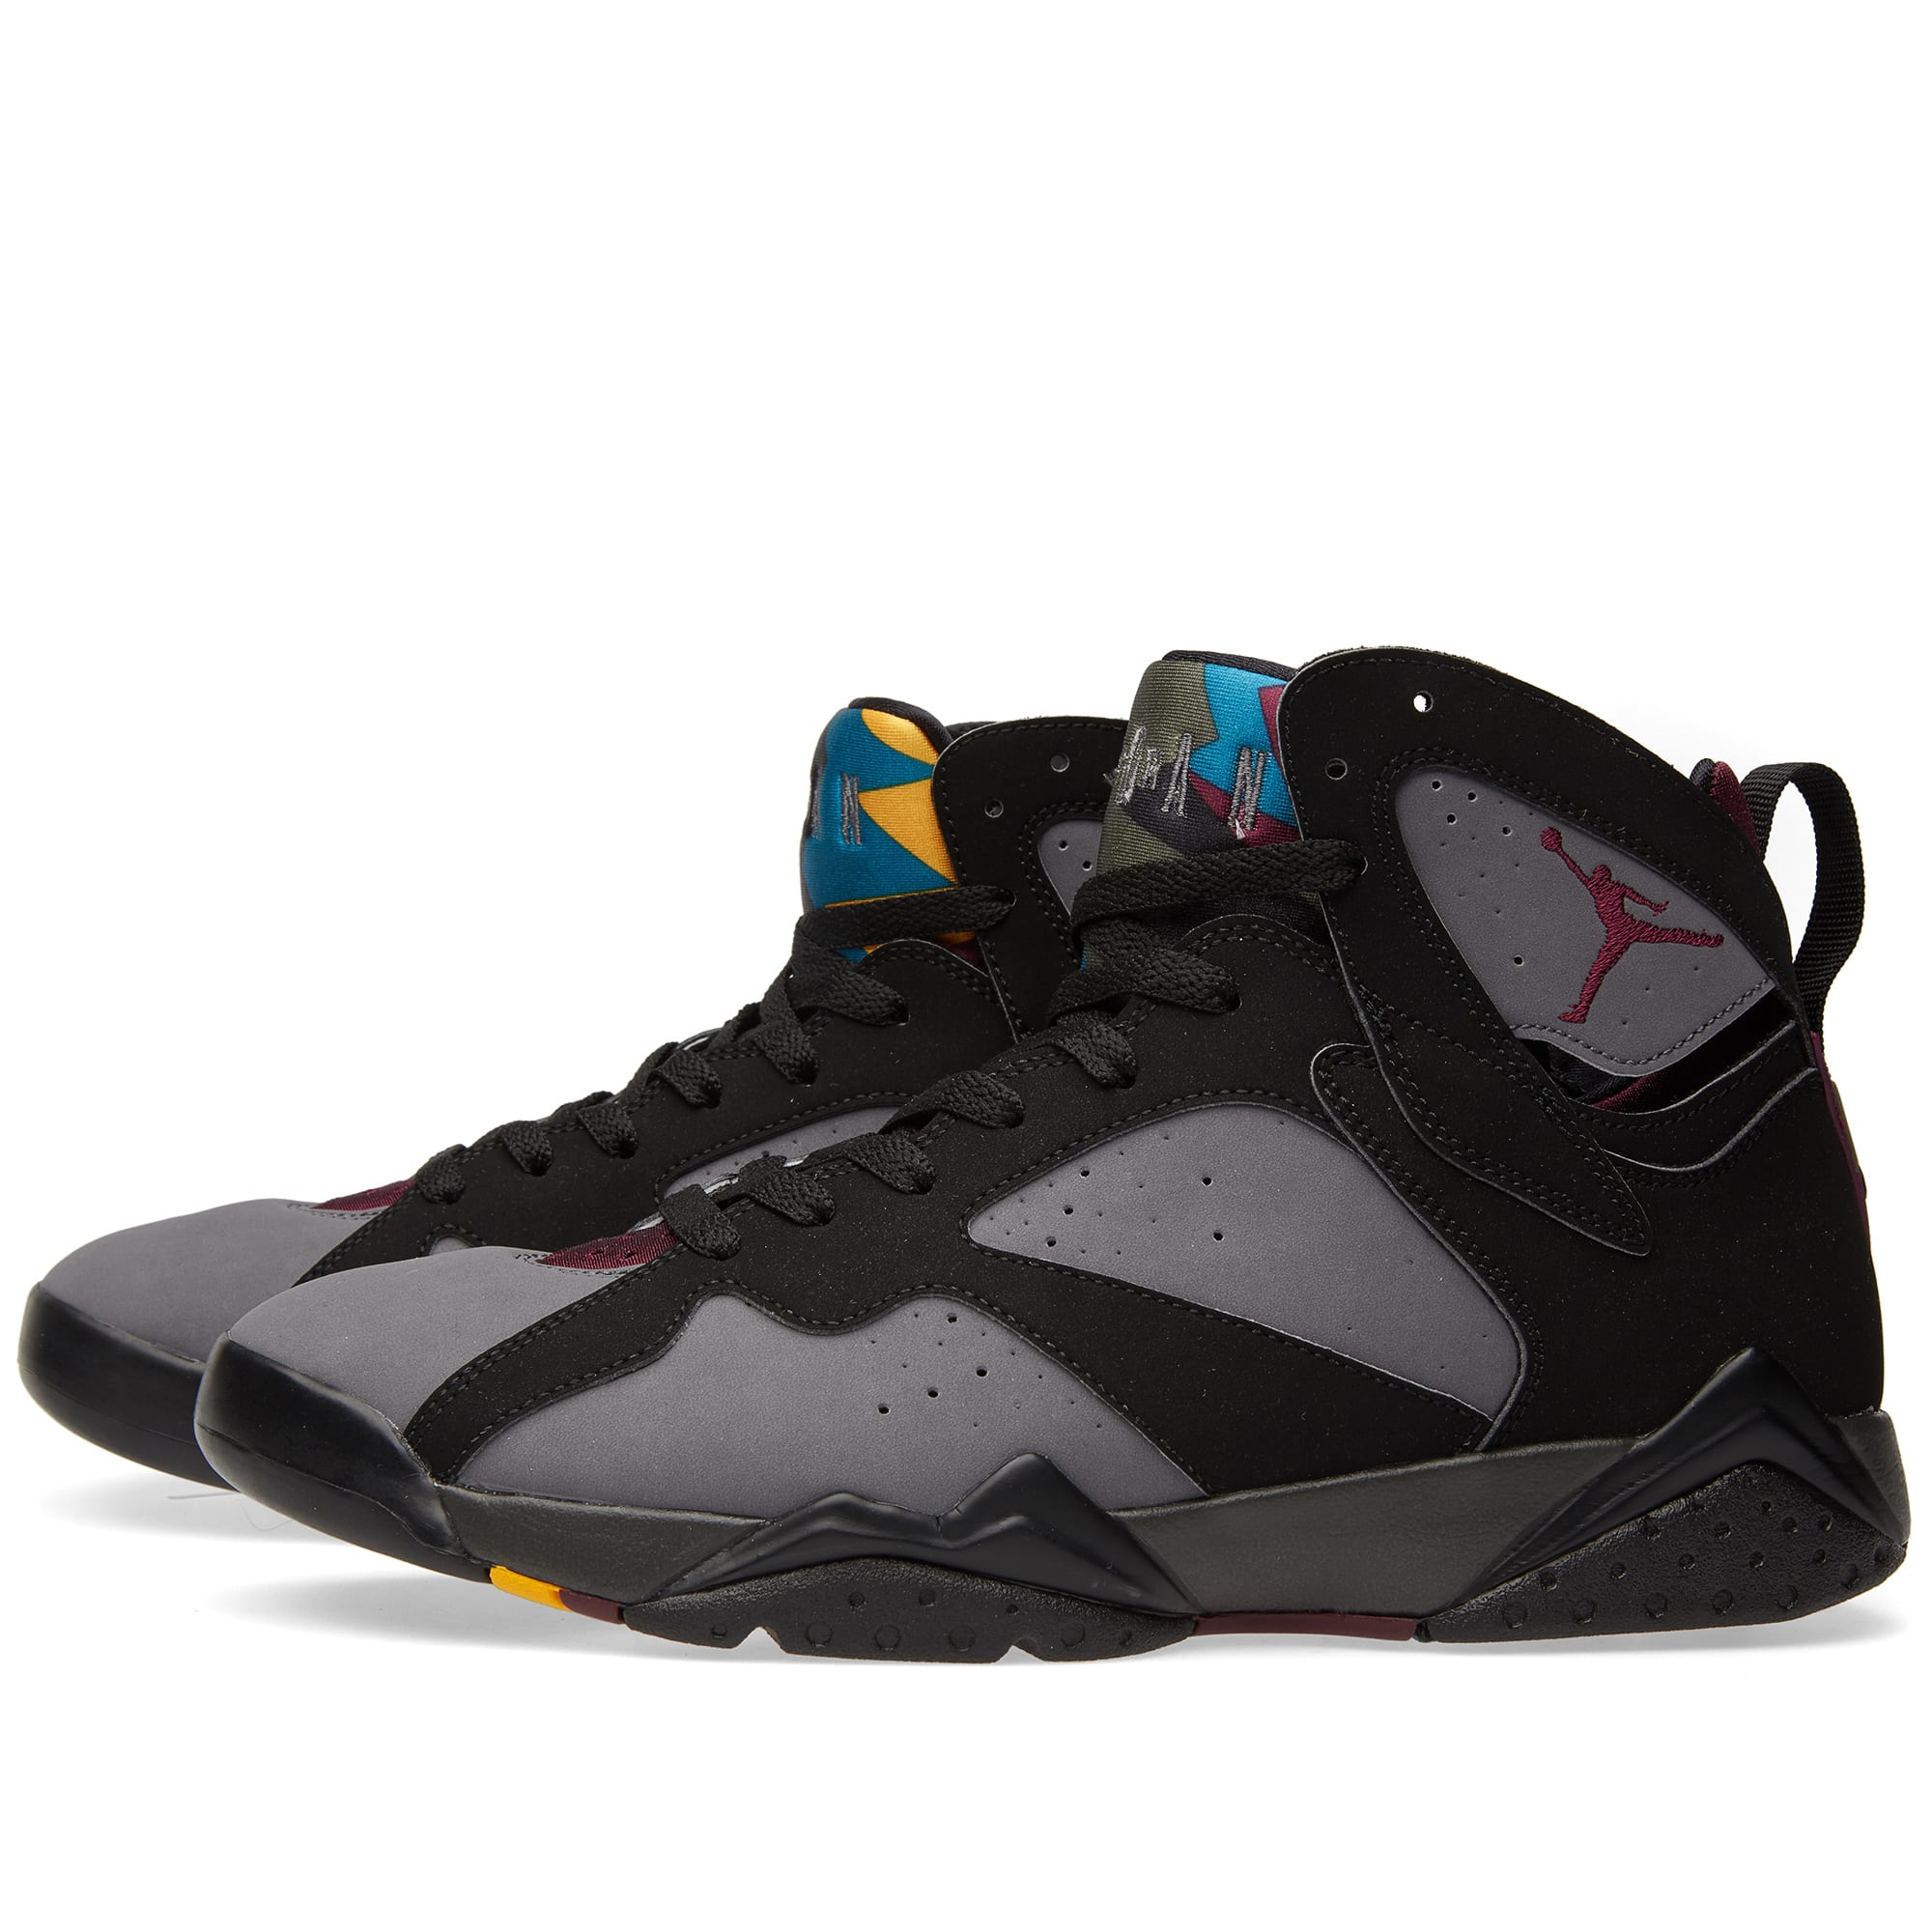 Nike Air Jordan VII Retro (Black, Bordeaux & Graphite) Nike Air Jordan 7 Retro